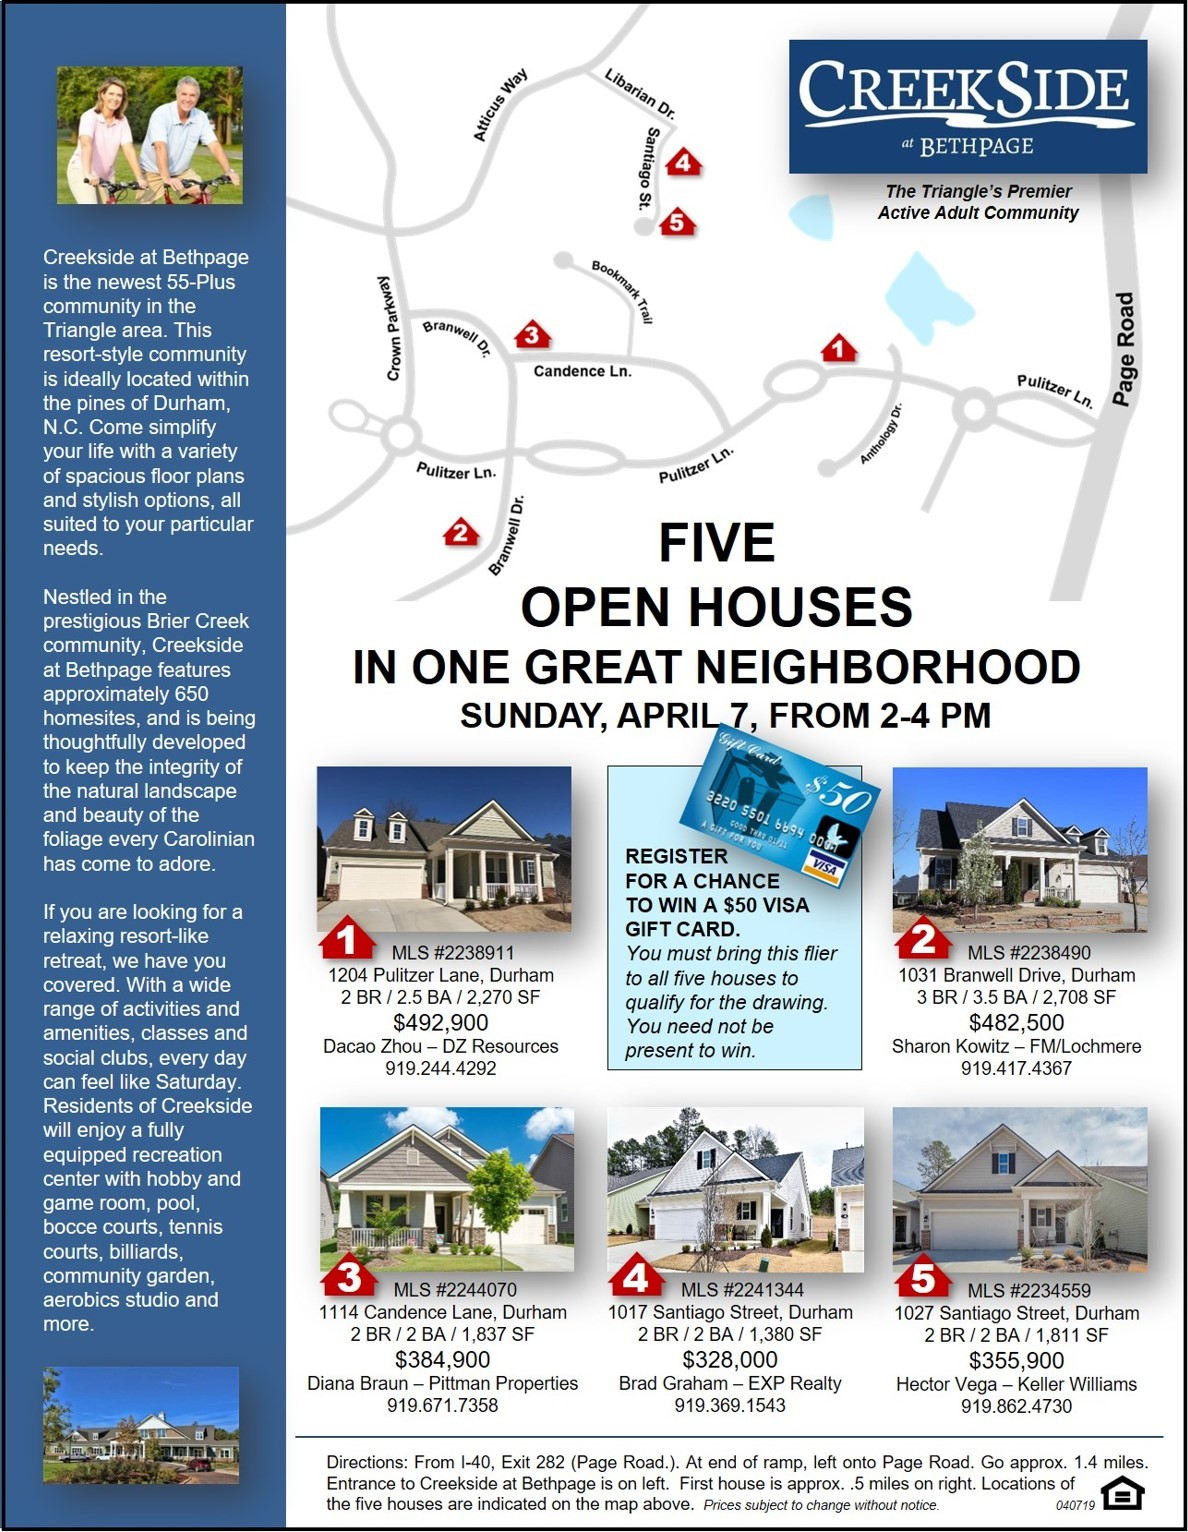 Creekside at Bethpage Community Open House